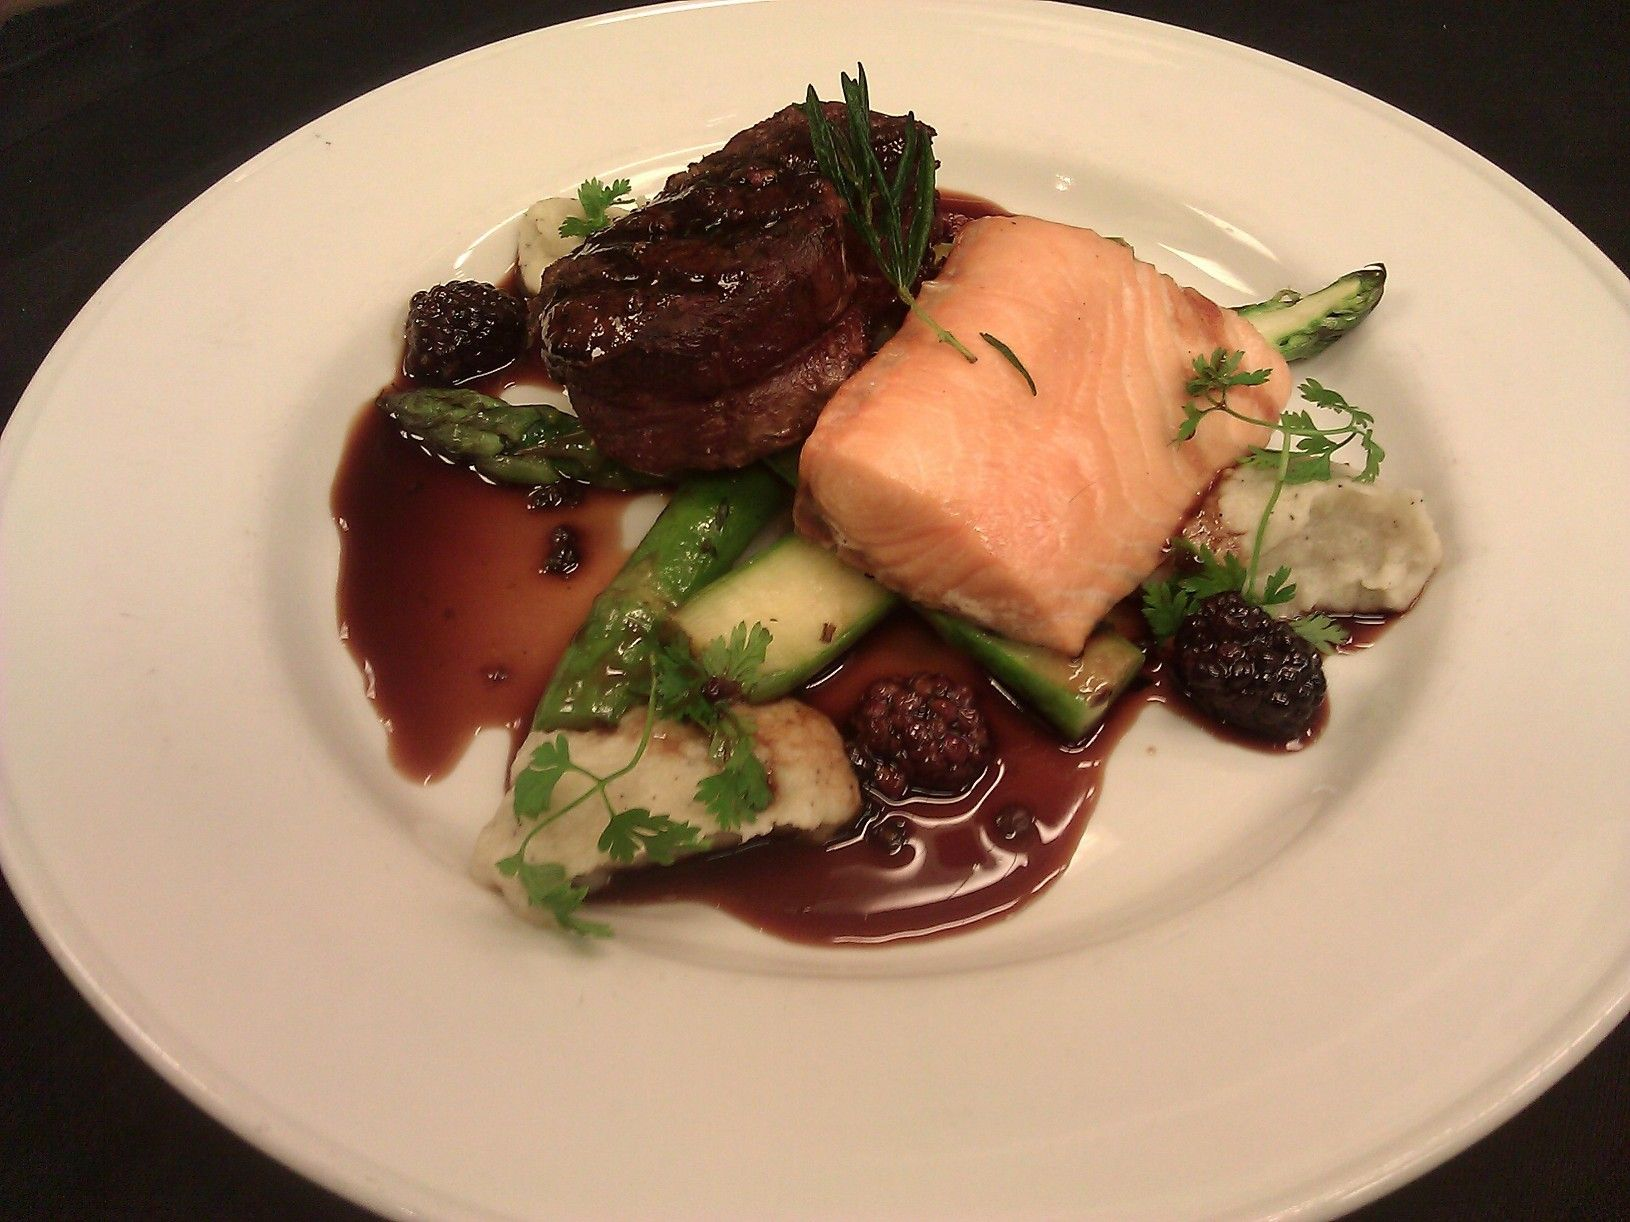 Pin by Sky Hotel on Chef Shawn Lawrence's Dishes | Pinterest